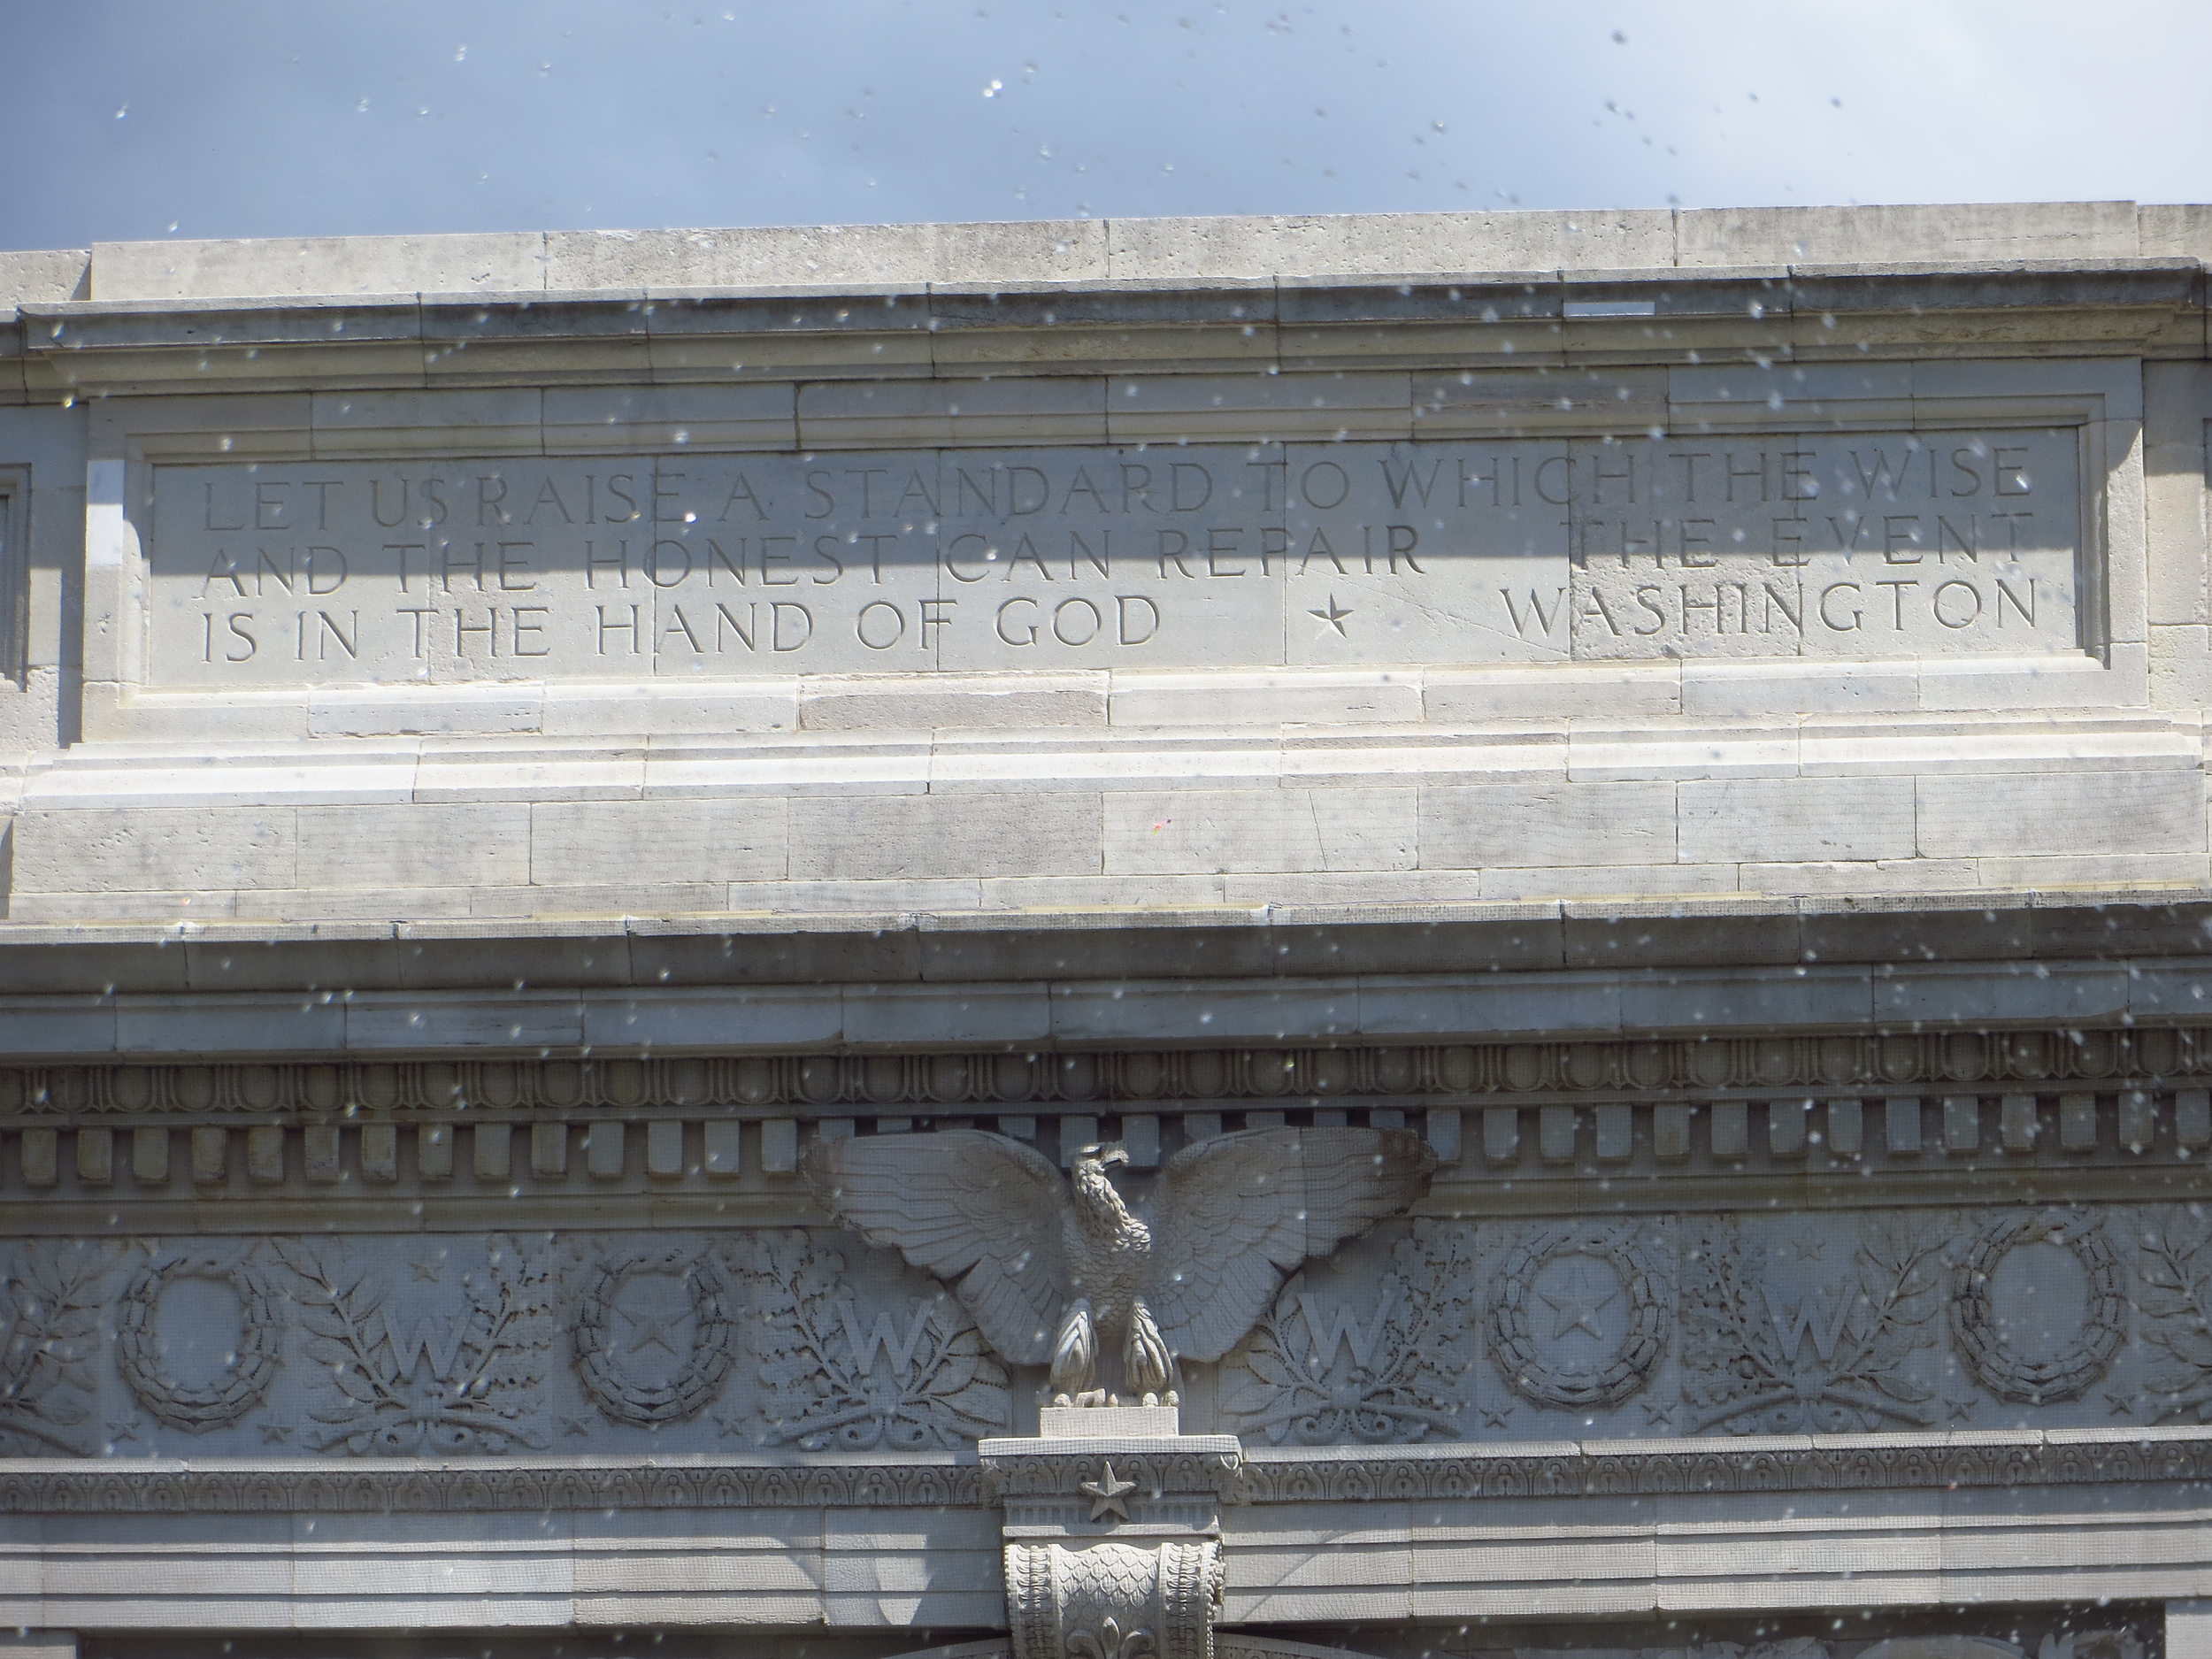 Let us raise a standard to which the wise and the honest can repair.  The event is in the hand of God.  - Washington